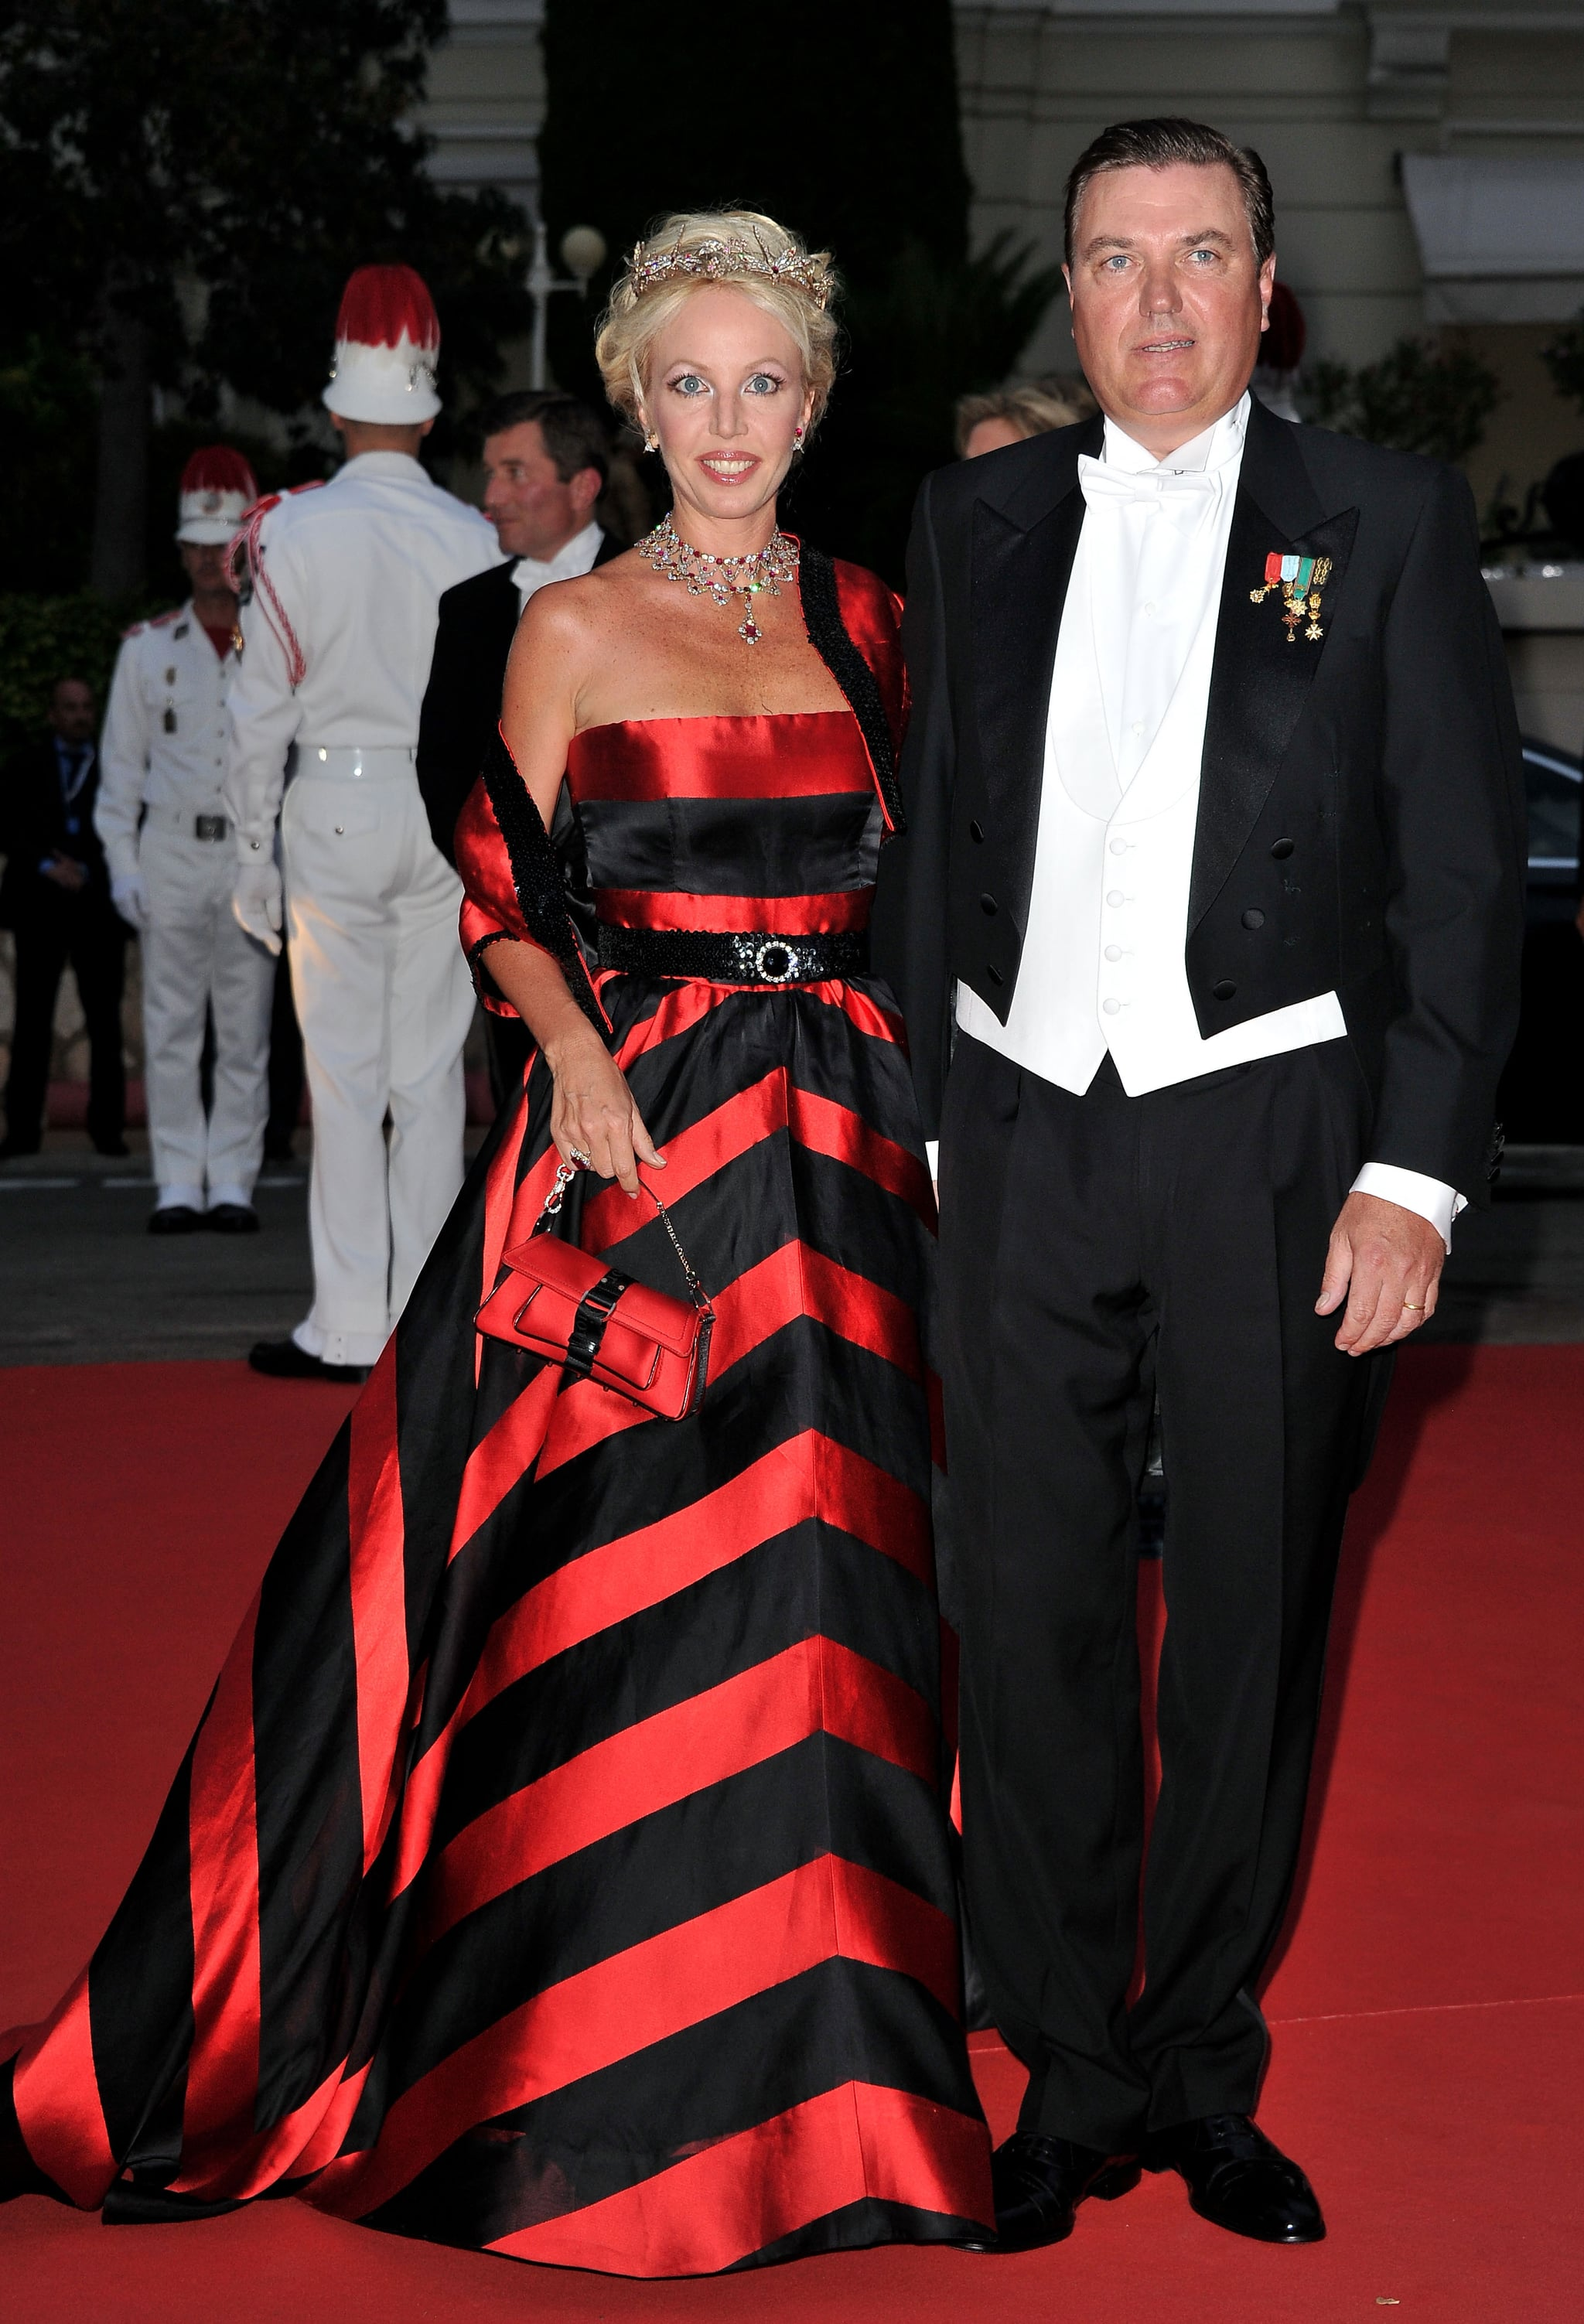 Italy's Prince Carlo of Bourbon-Two Sicilies attended a dinner at Opera terraces after the religious wedding ceremony of Prince Albert II of Monaco and Princess Charlene of Monaco.